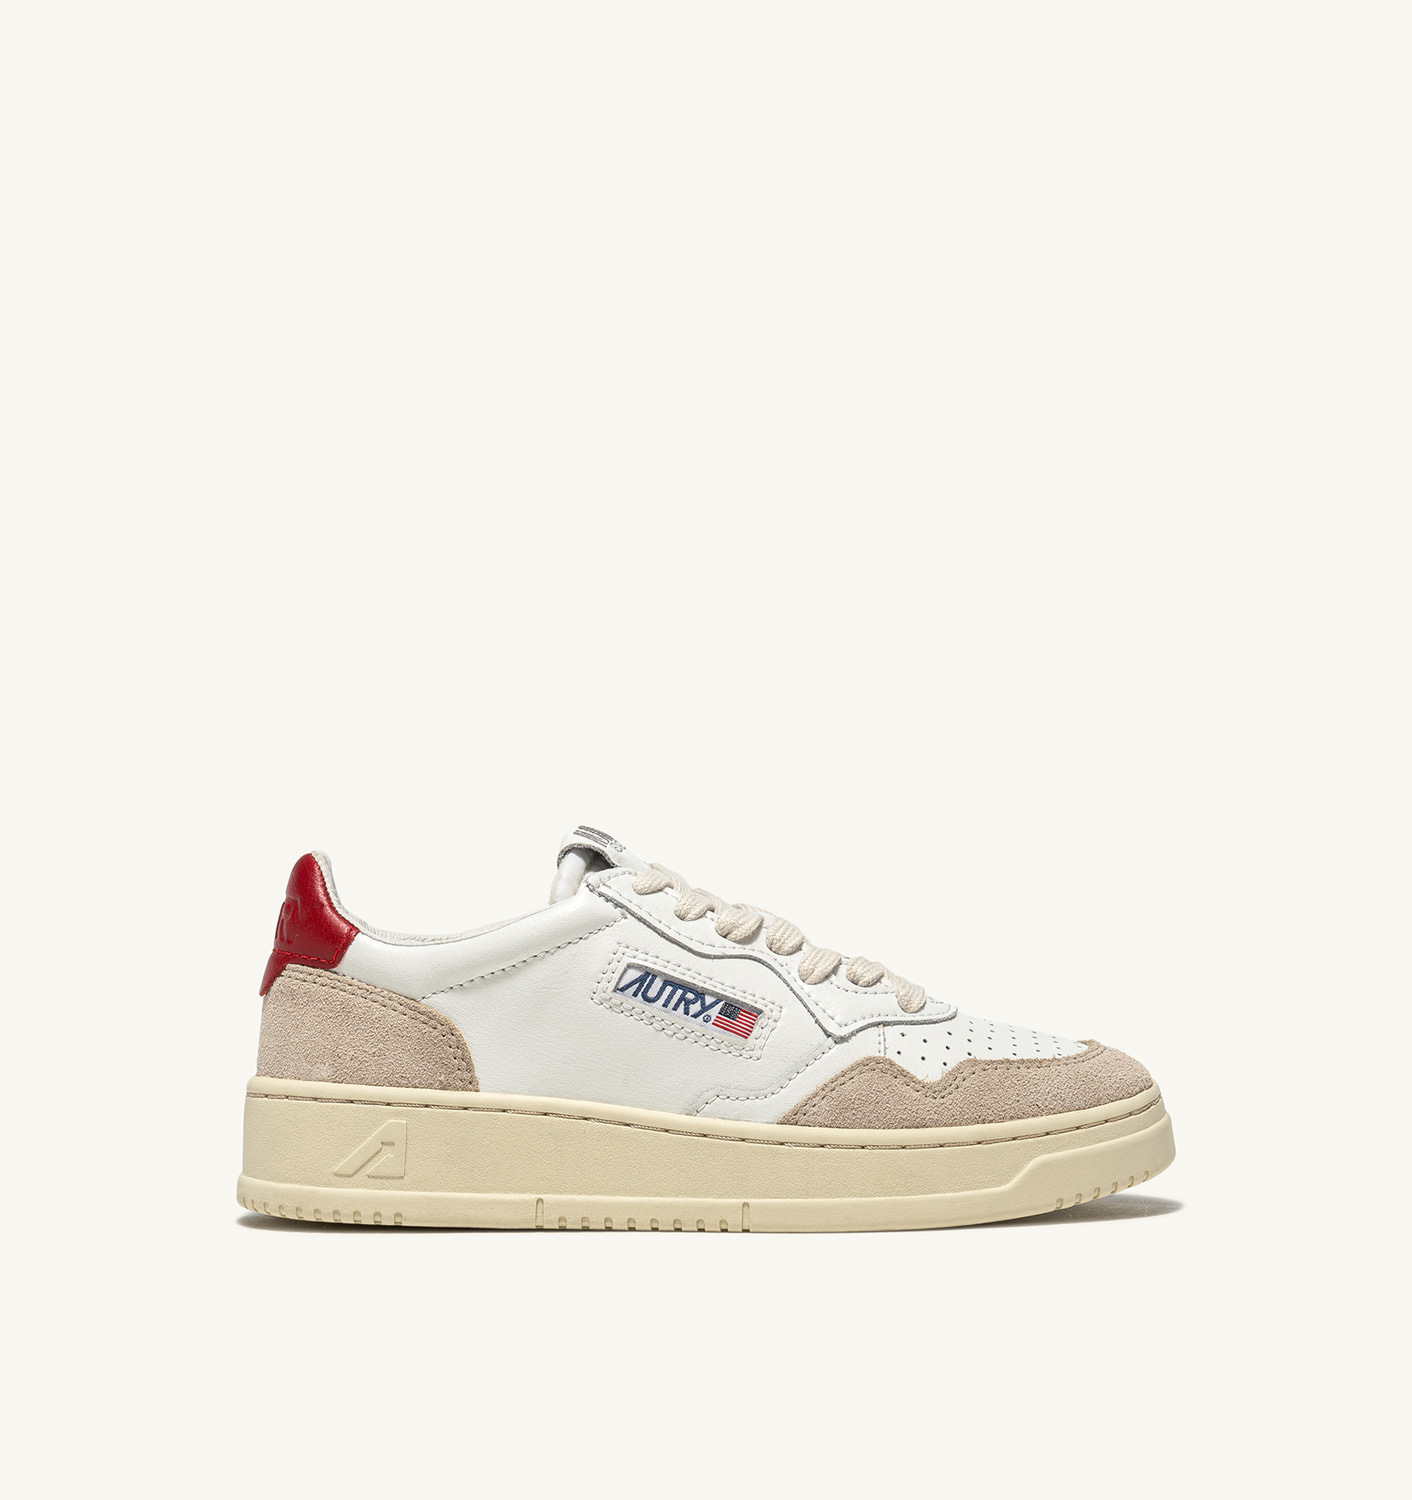 AUTRY: SNEAKERS MEDALIST LOW IN PELLE E SUEDE BIANCO ROSSO